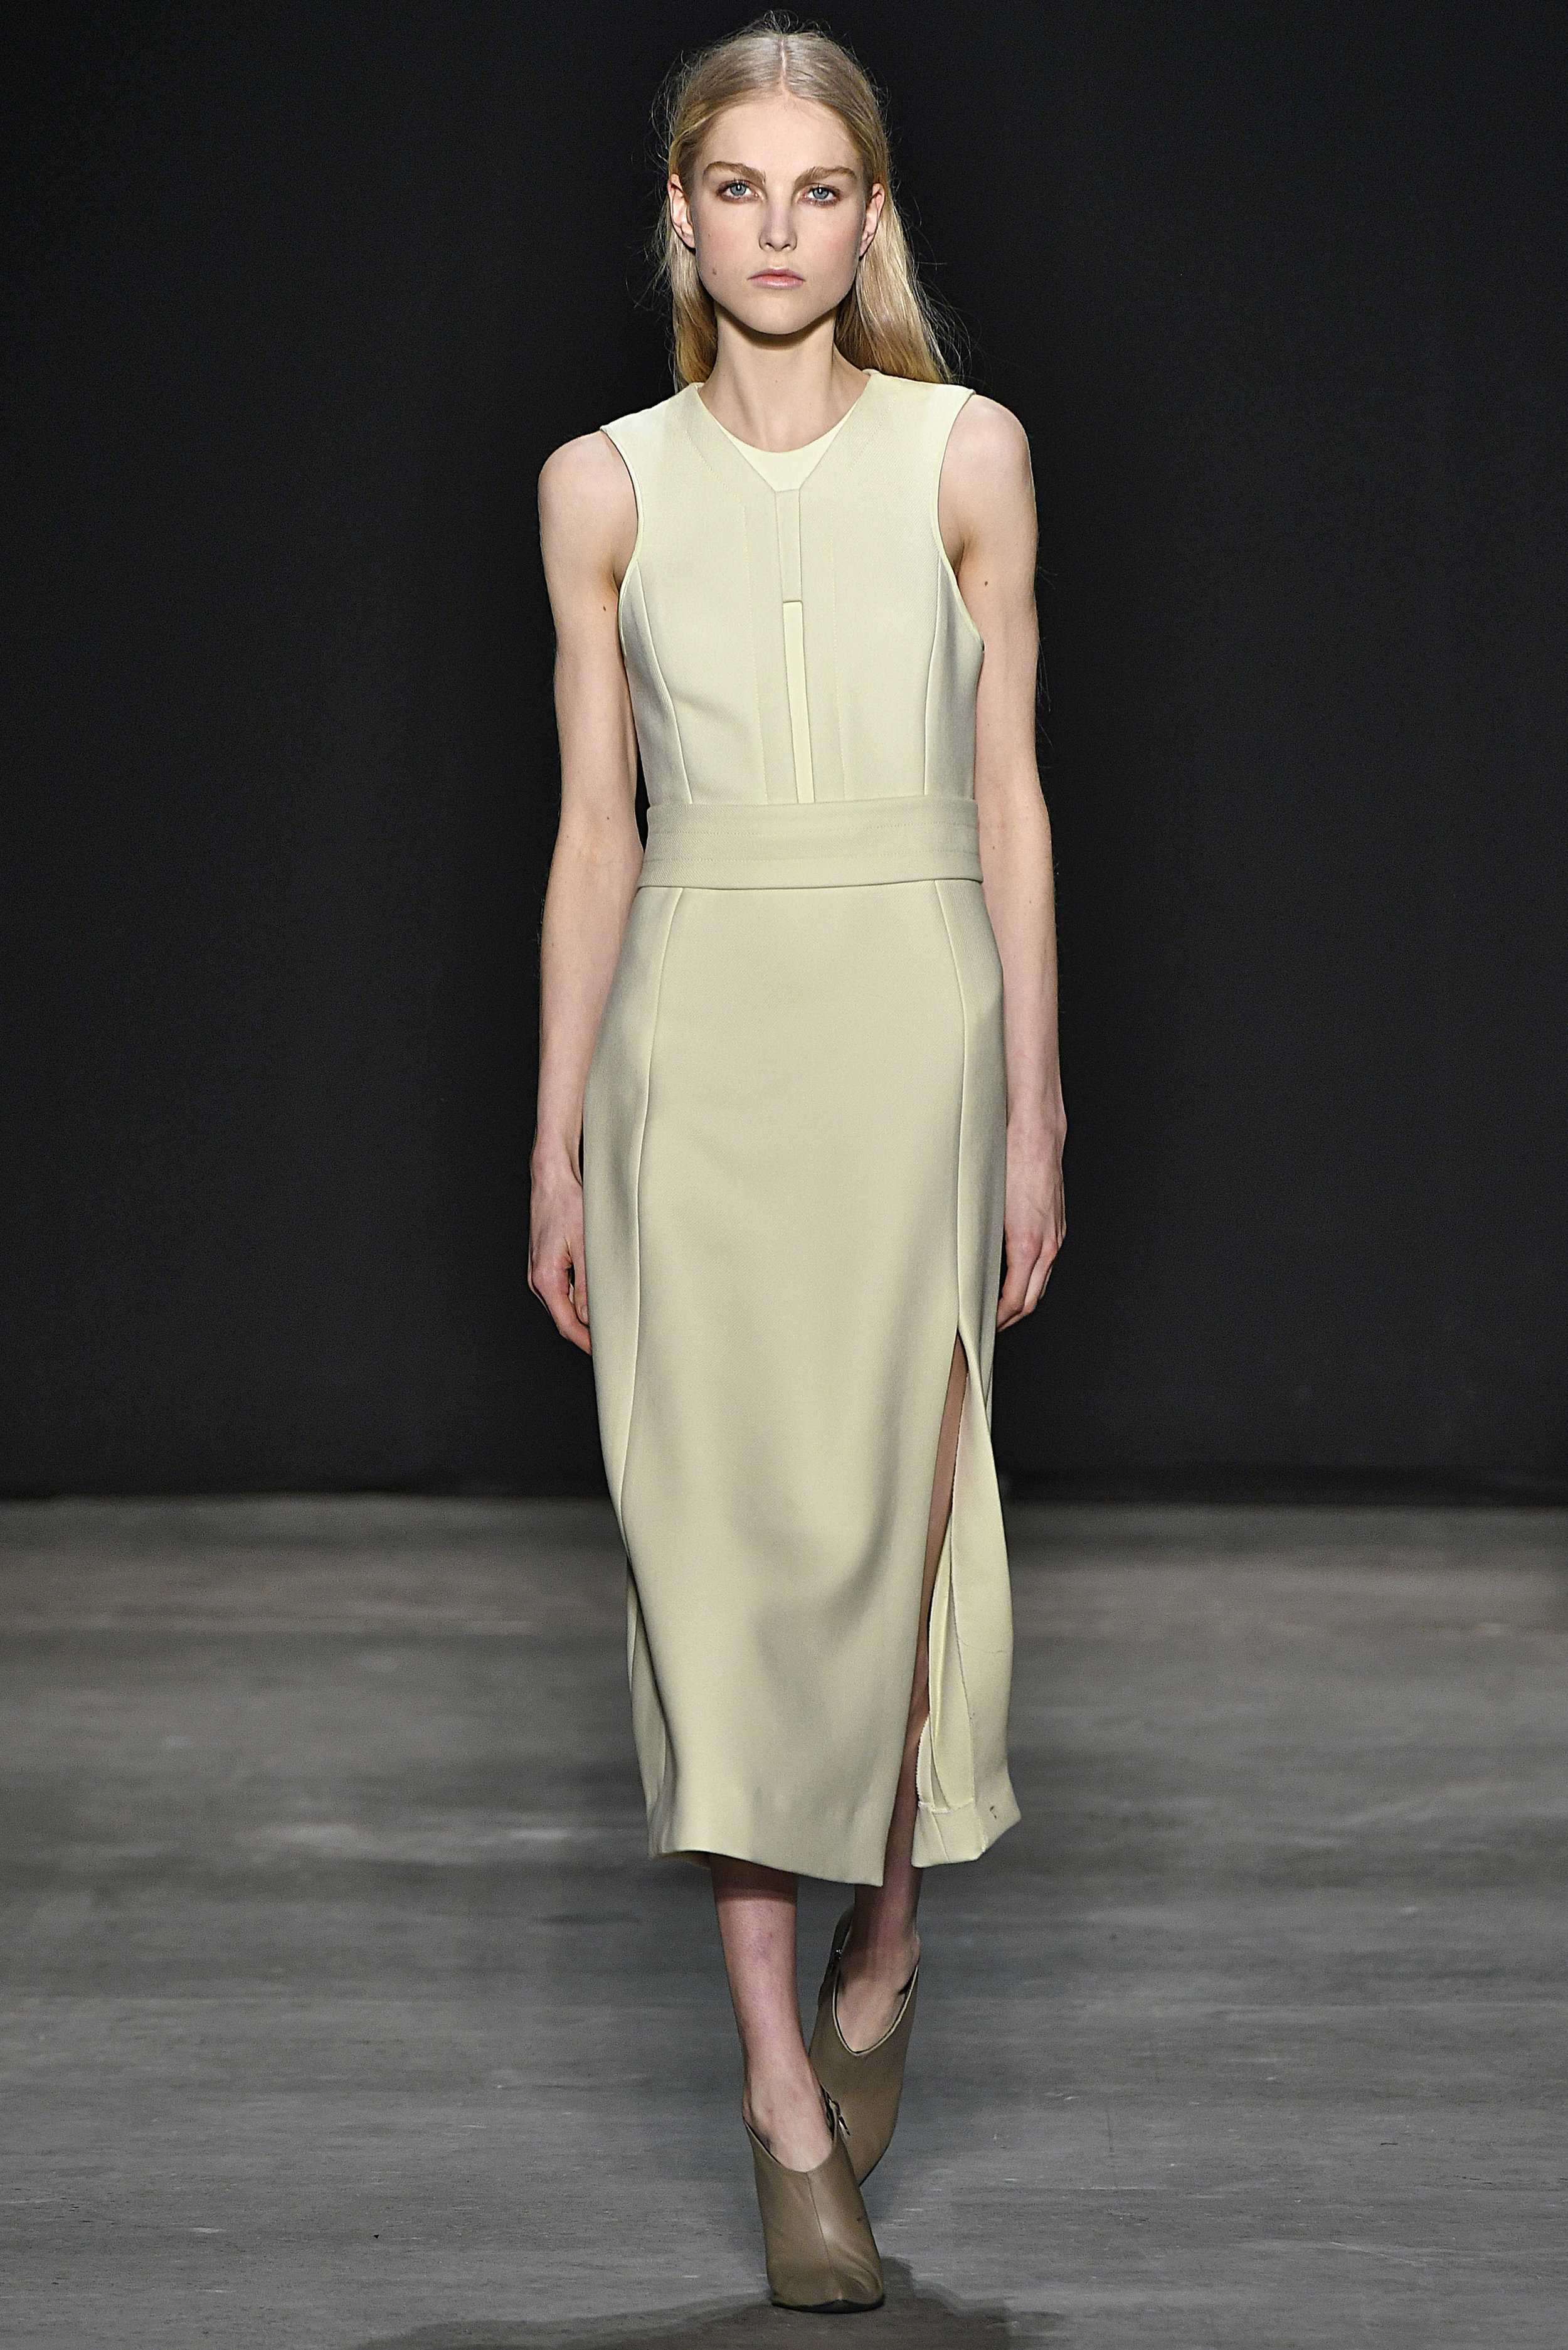 Narciso Rodriguez Fall 2017 collection. Pale yellow wool twill dress.